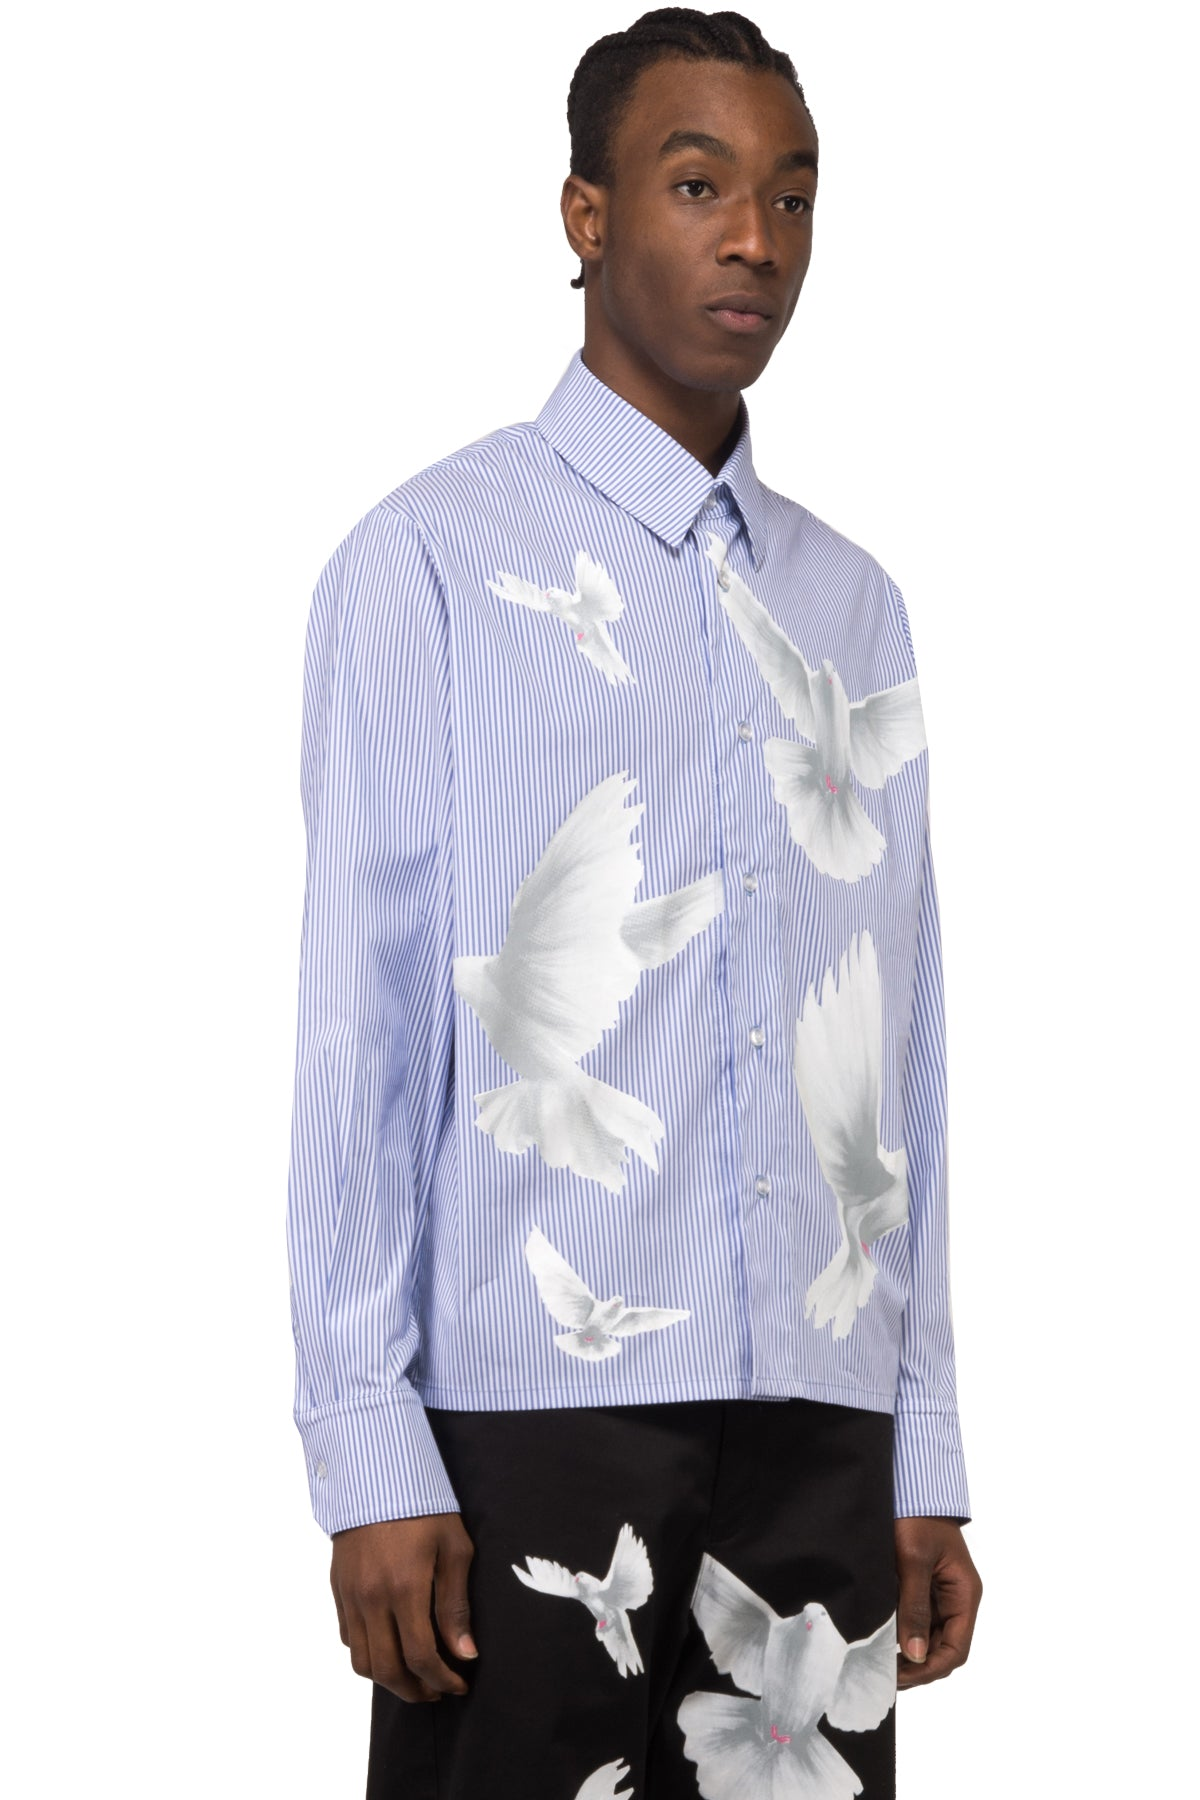 DESIREE STRIPES BIRDS BUTTON SHIRT